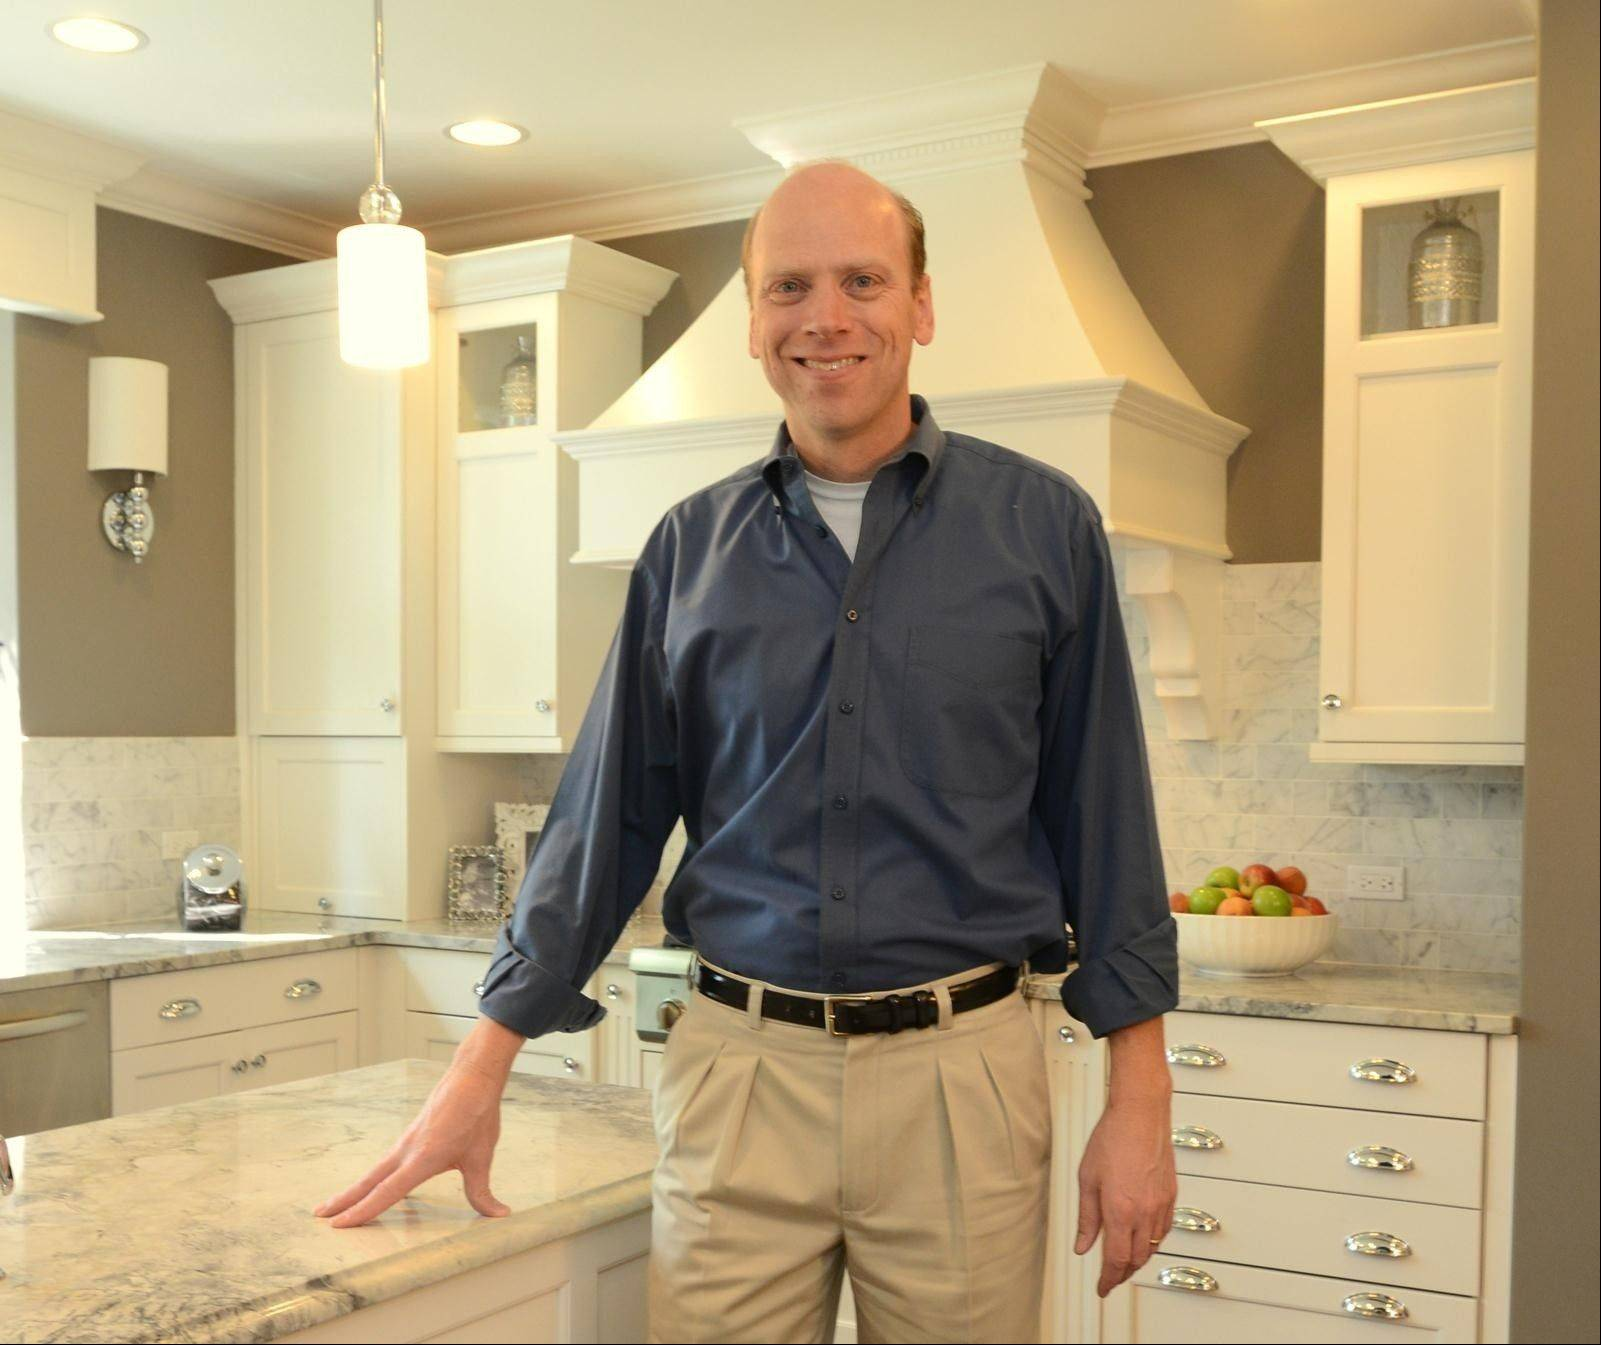 Architect David Wytmar, partner in Groundwork Ltd. of Buffalo Grove, recently designed kosher kitchens for neighbors in Skokie.